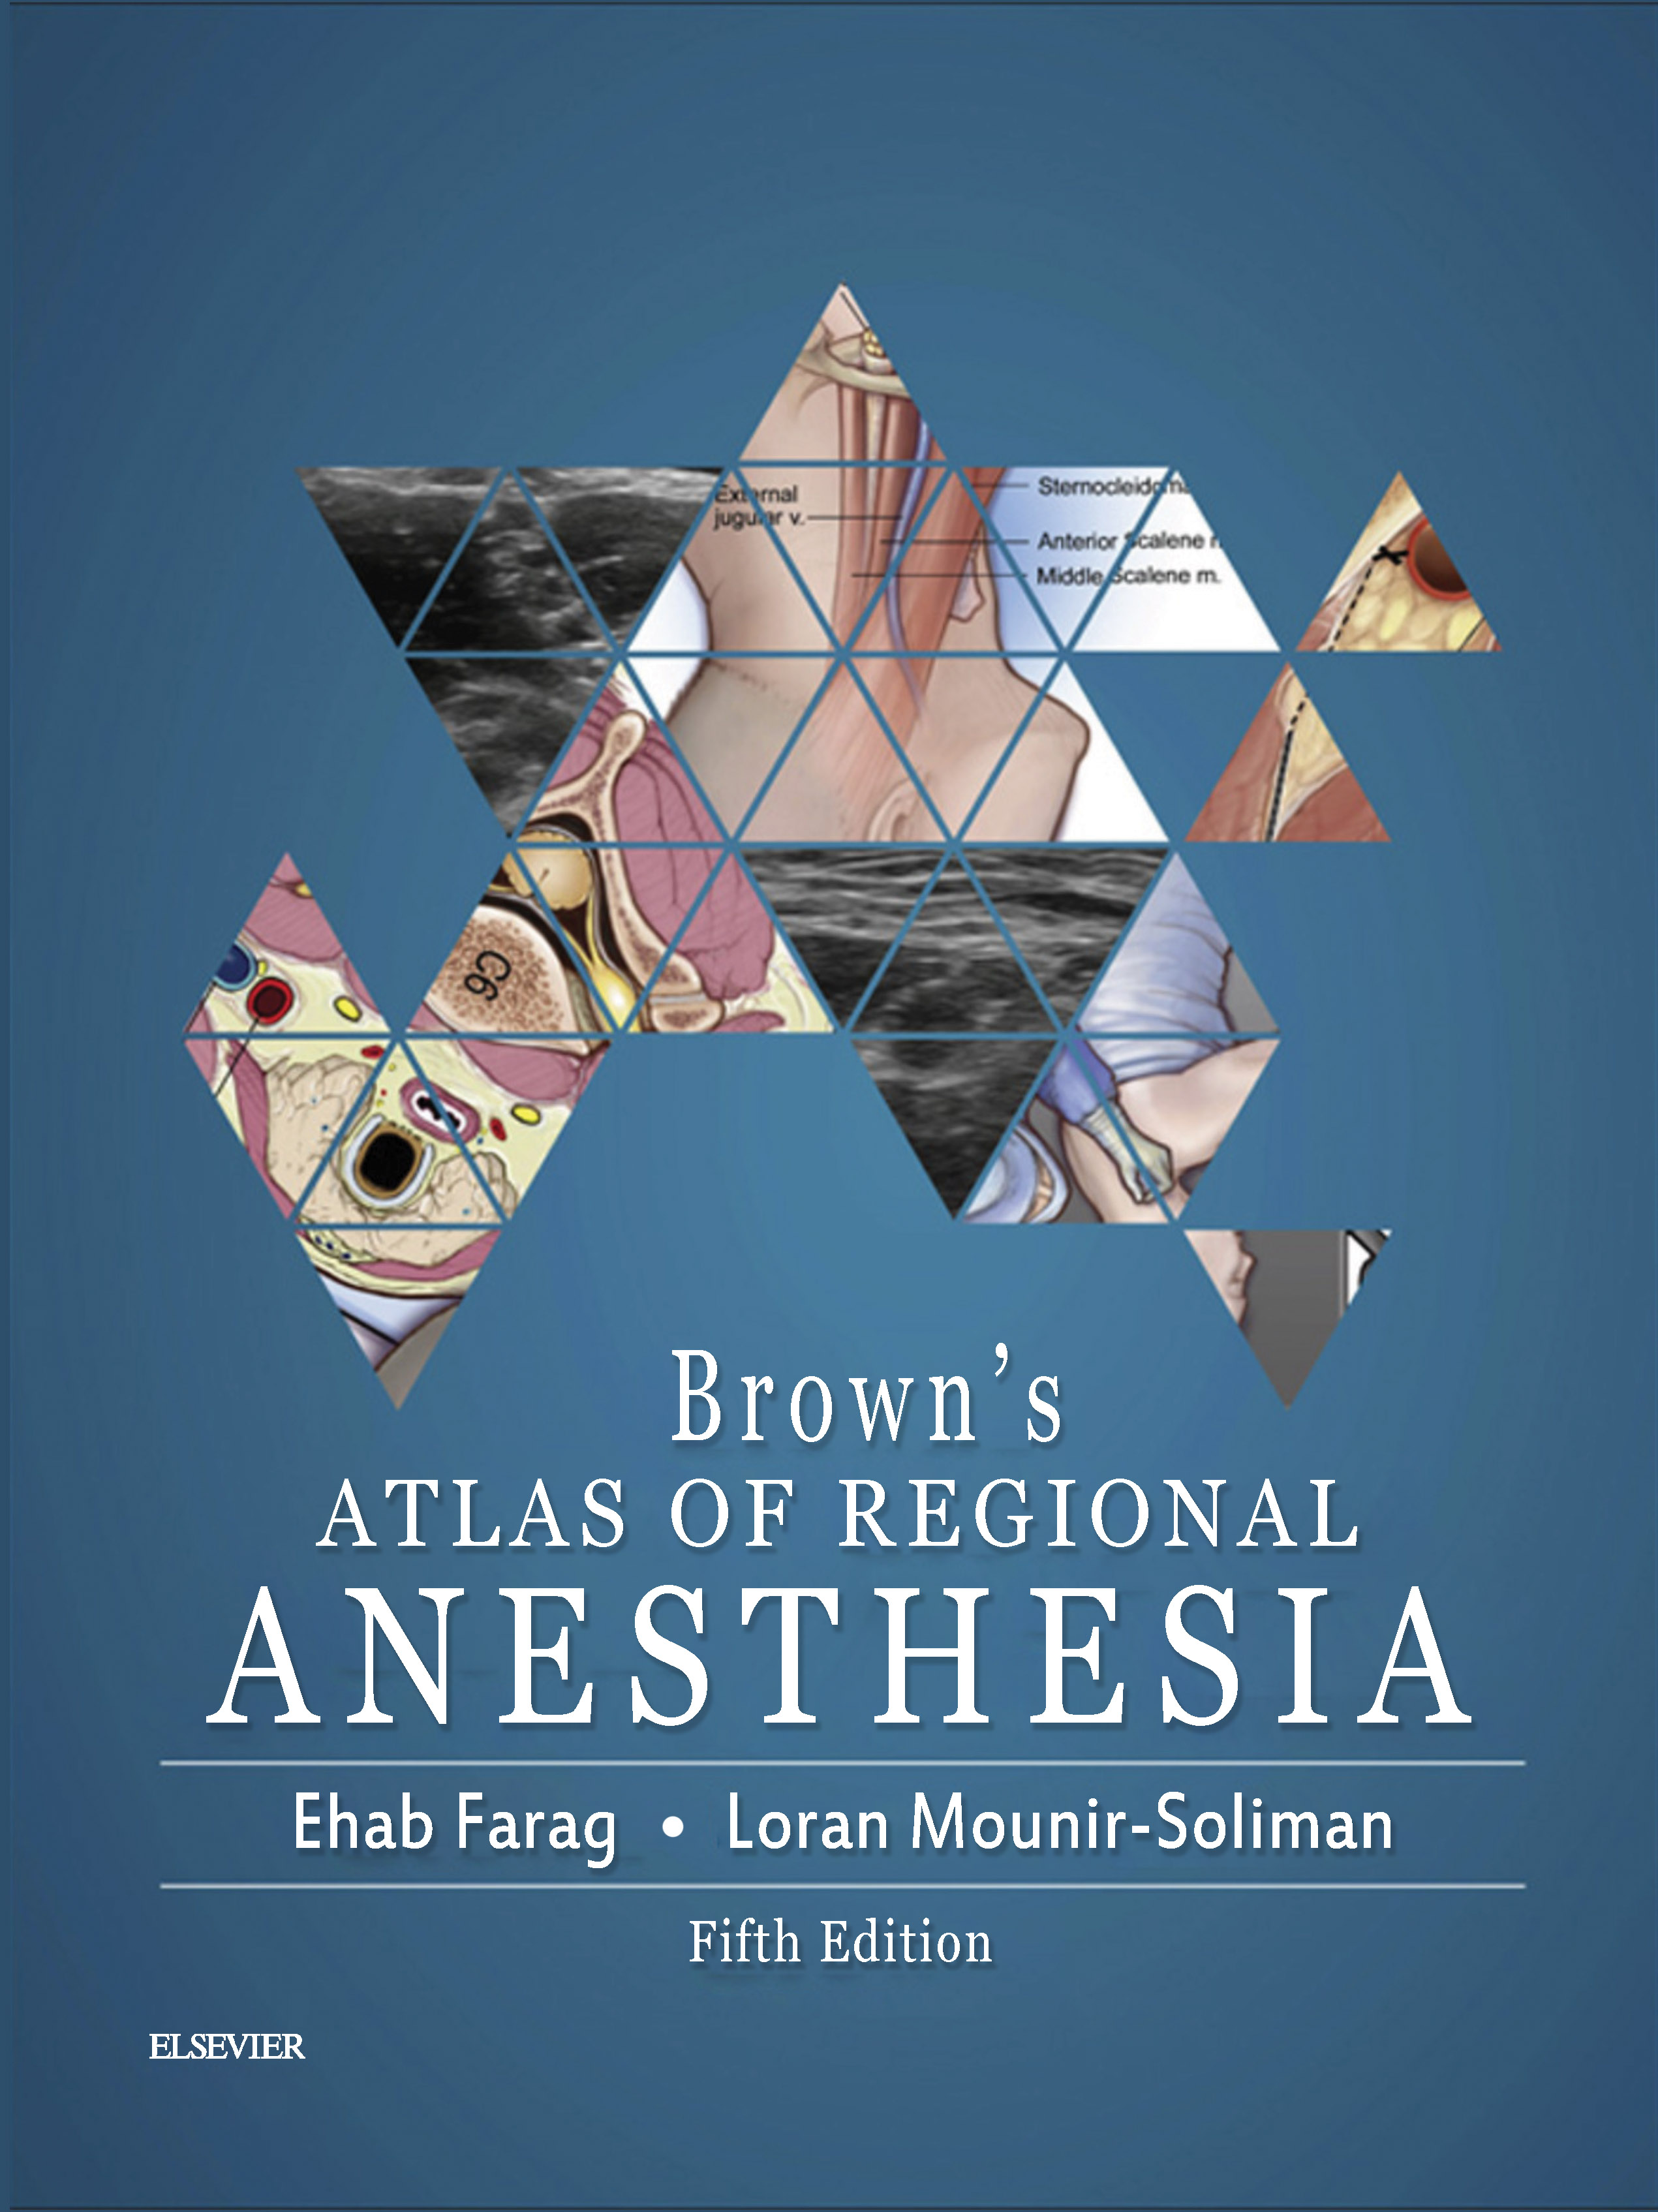 brown's Atlas of Regional Anesthesia Farag Soliman اشراقیه افست